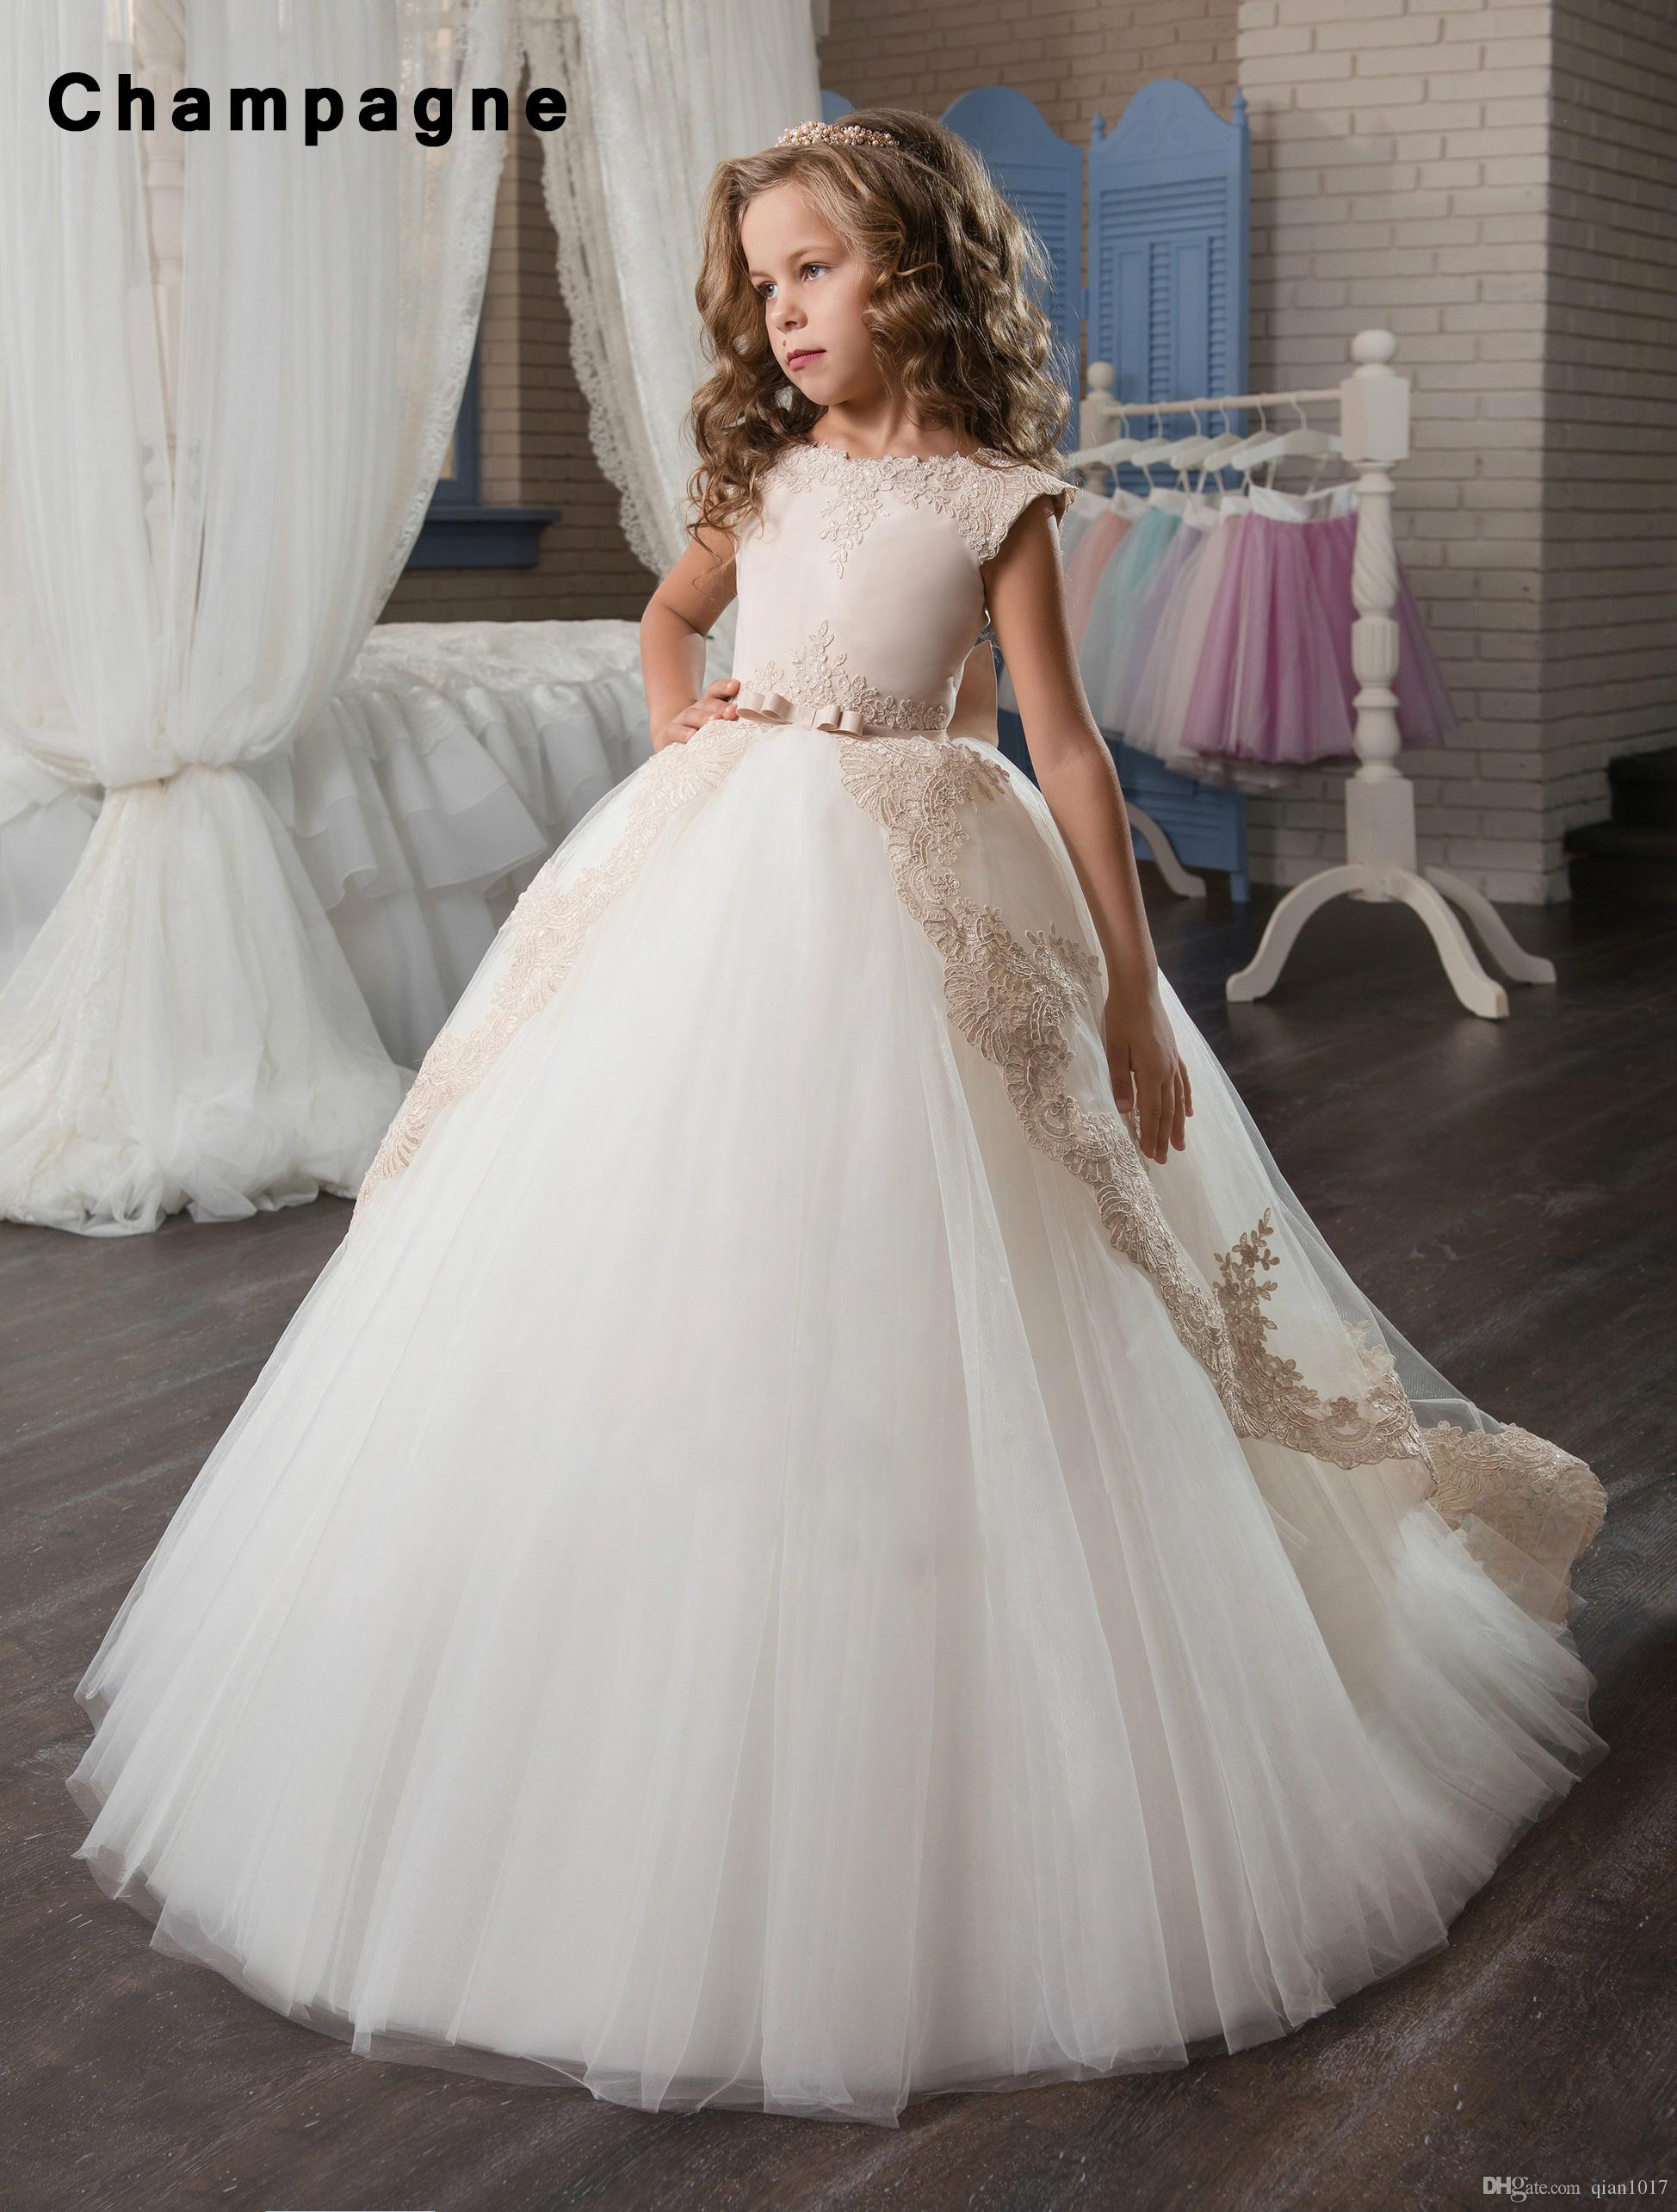 66823f706b 2019 Fancy Flower Girl Dress Tulle Satin Lace Cap Sleeves Kids Pageant Ball  Gown From Qian1017, $55.28 | DHgate.Com